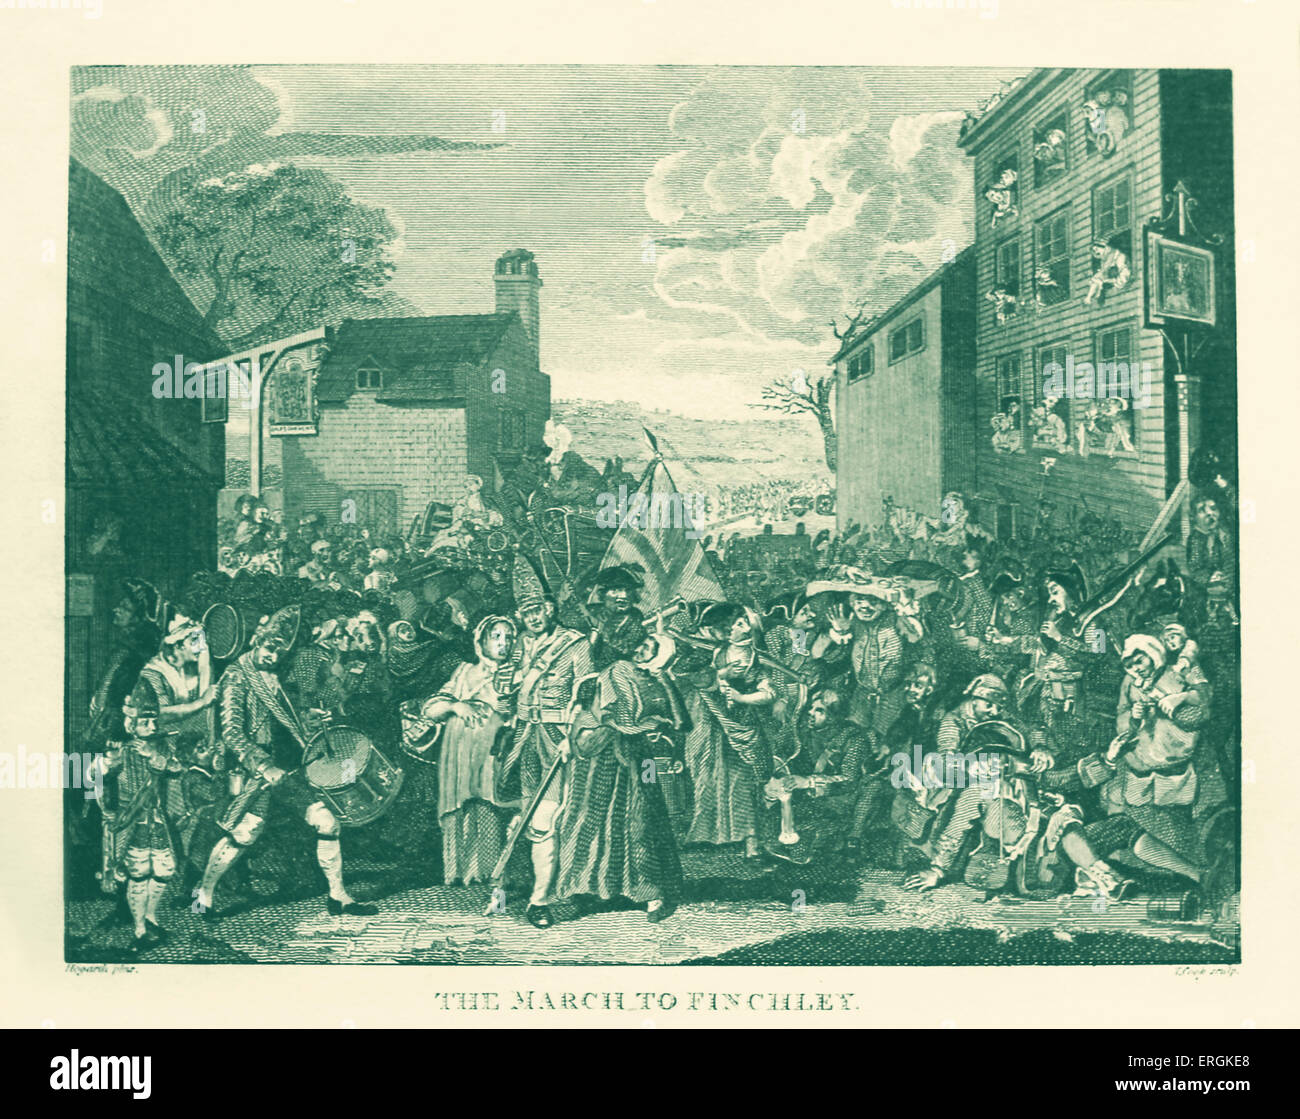 The March to Finchley by William Hogarth, 1750. Engraved by Thomas Cook - Stock Image